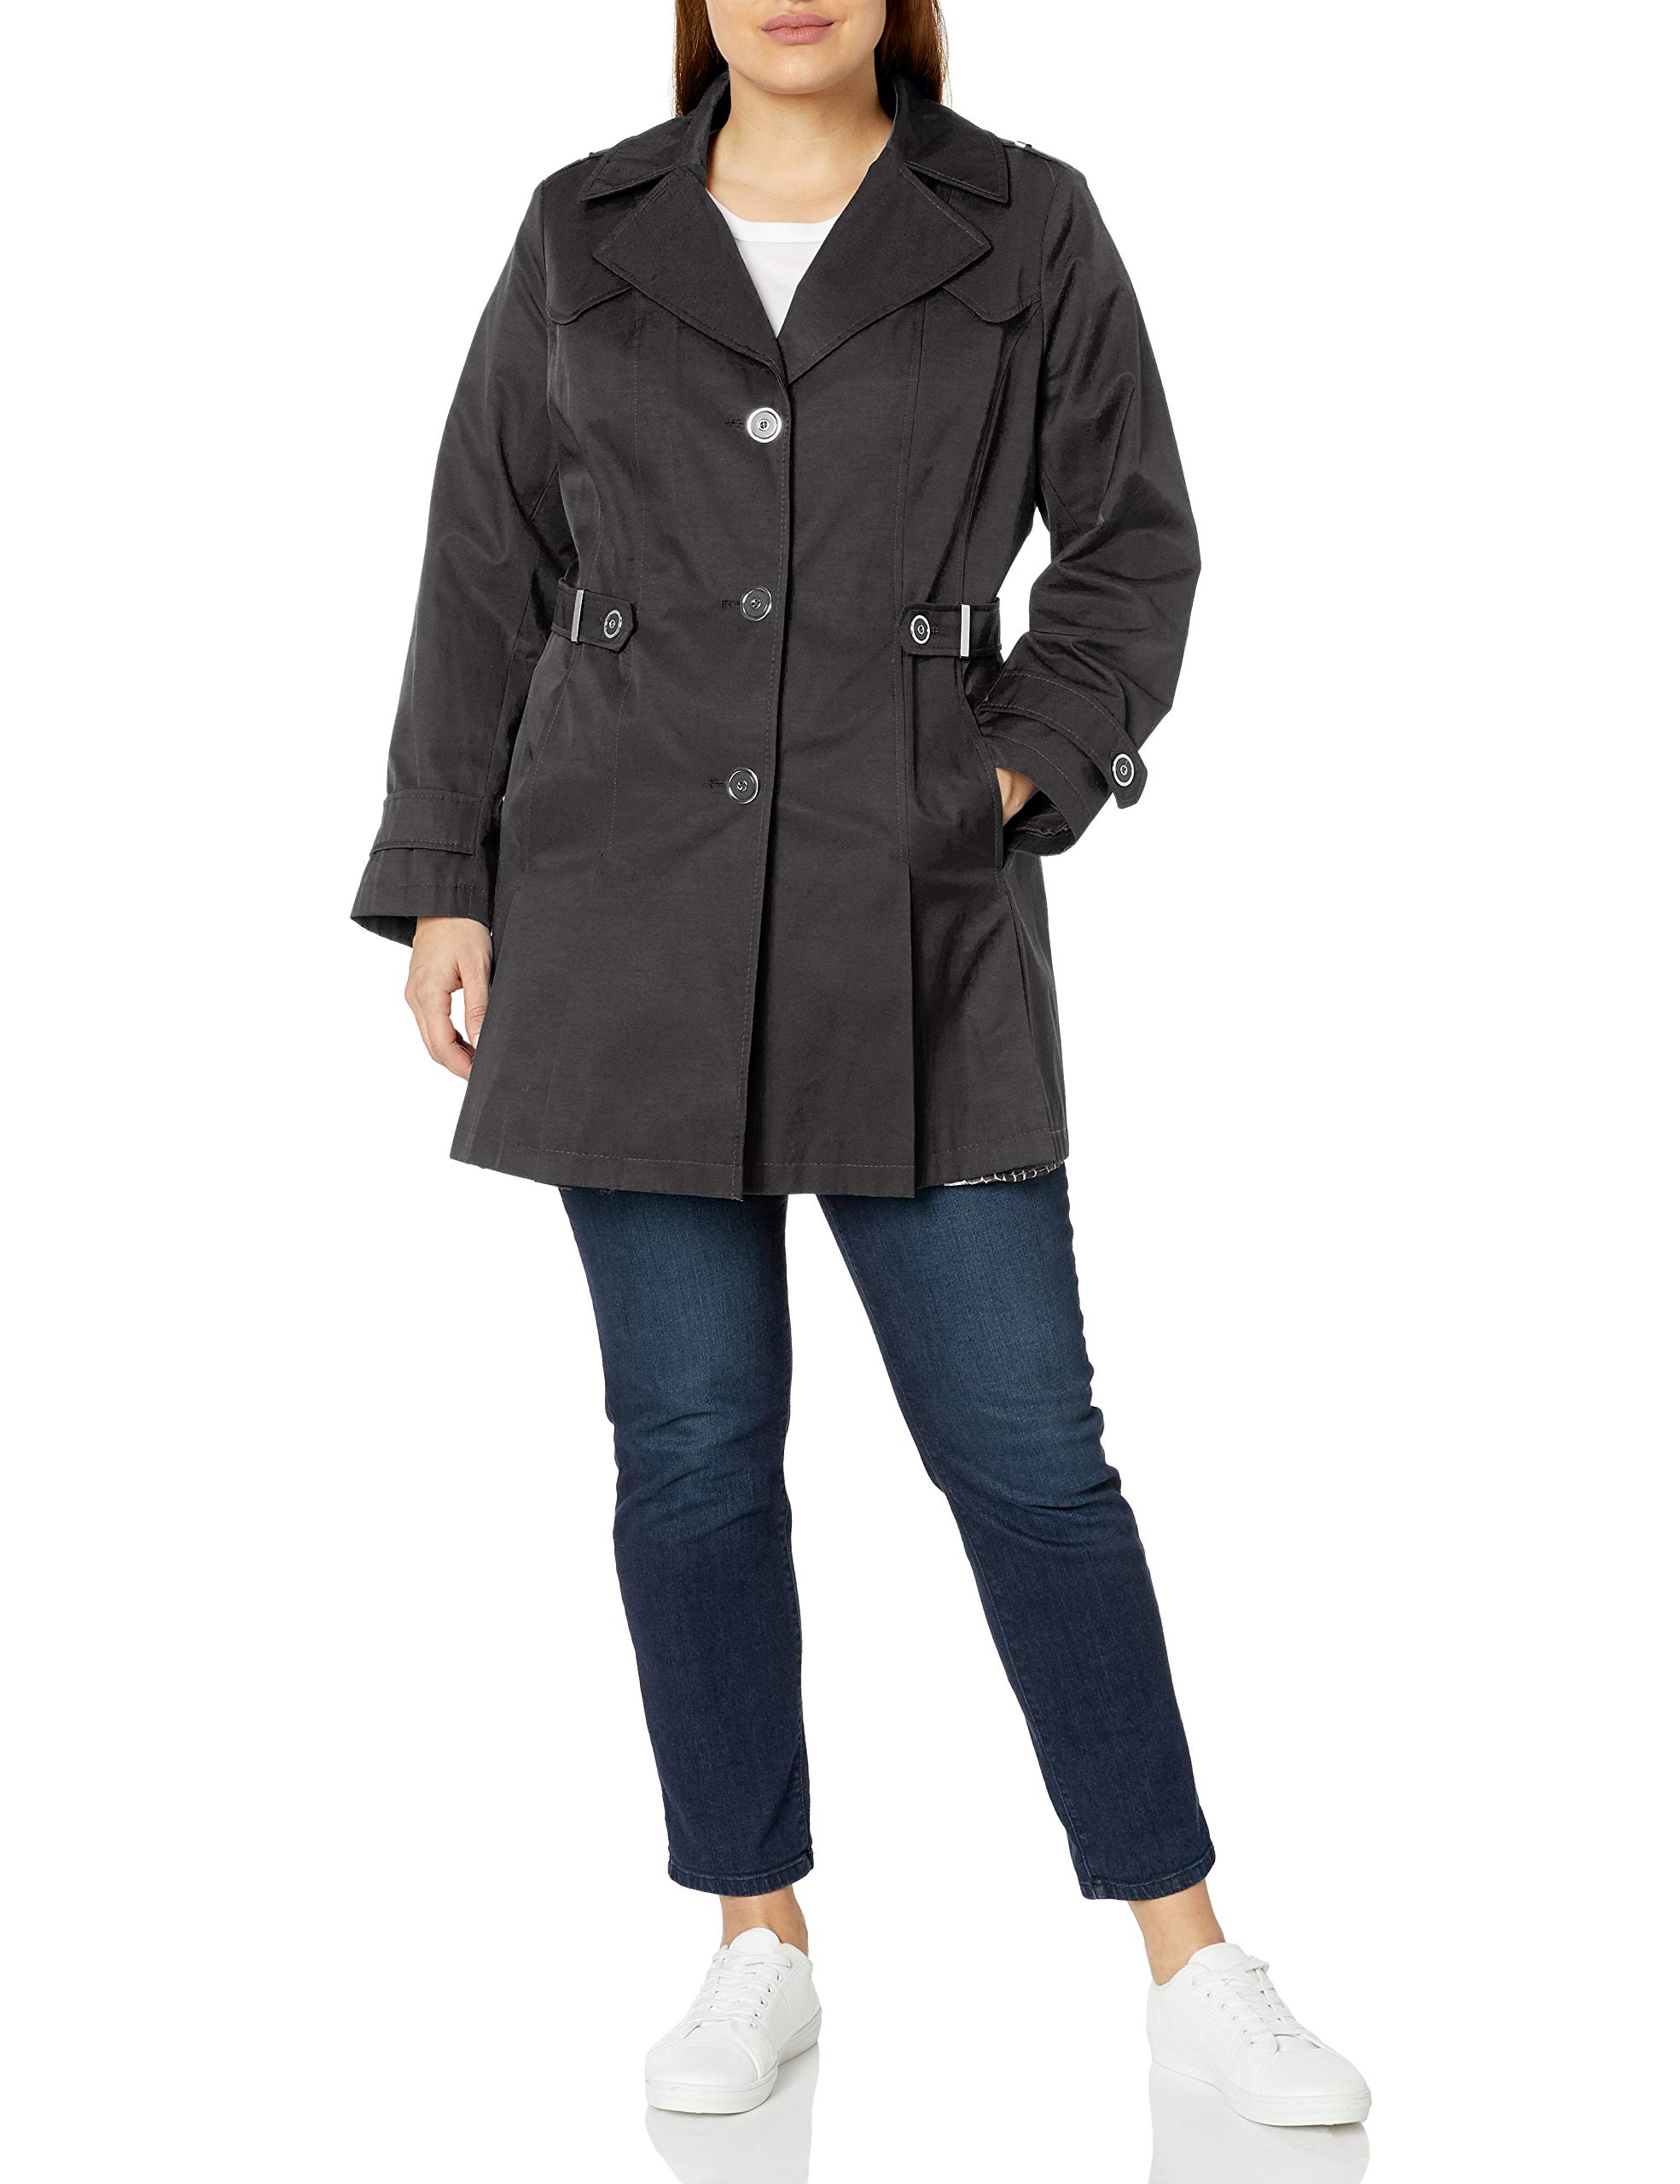 Via Spiga Women's Plus-Size Single-Breasted Pleated Trench Coat